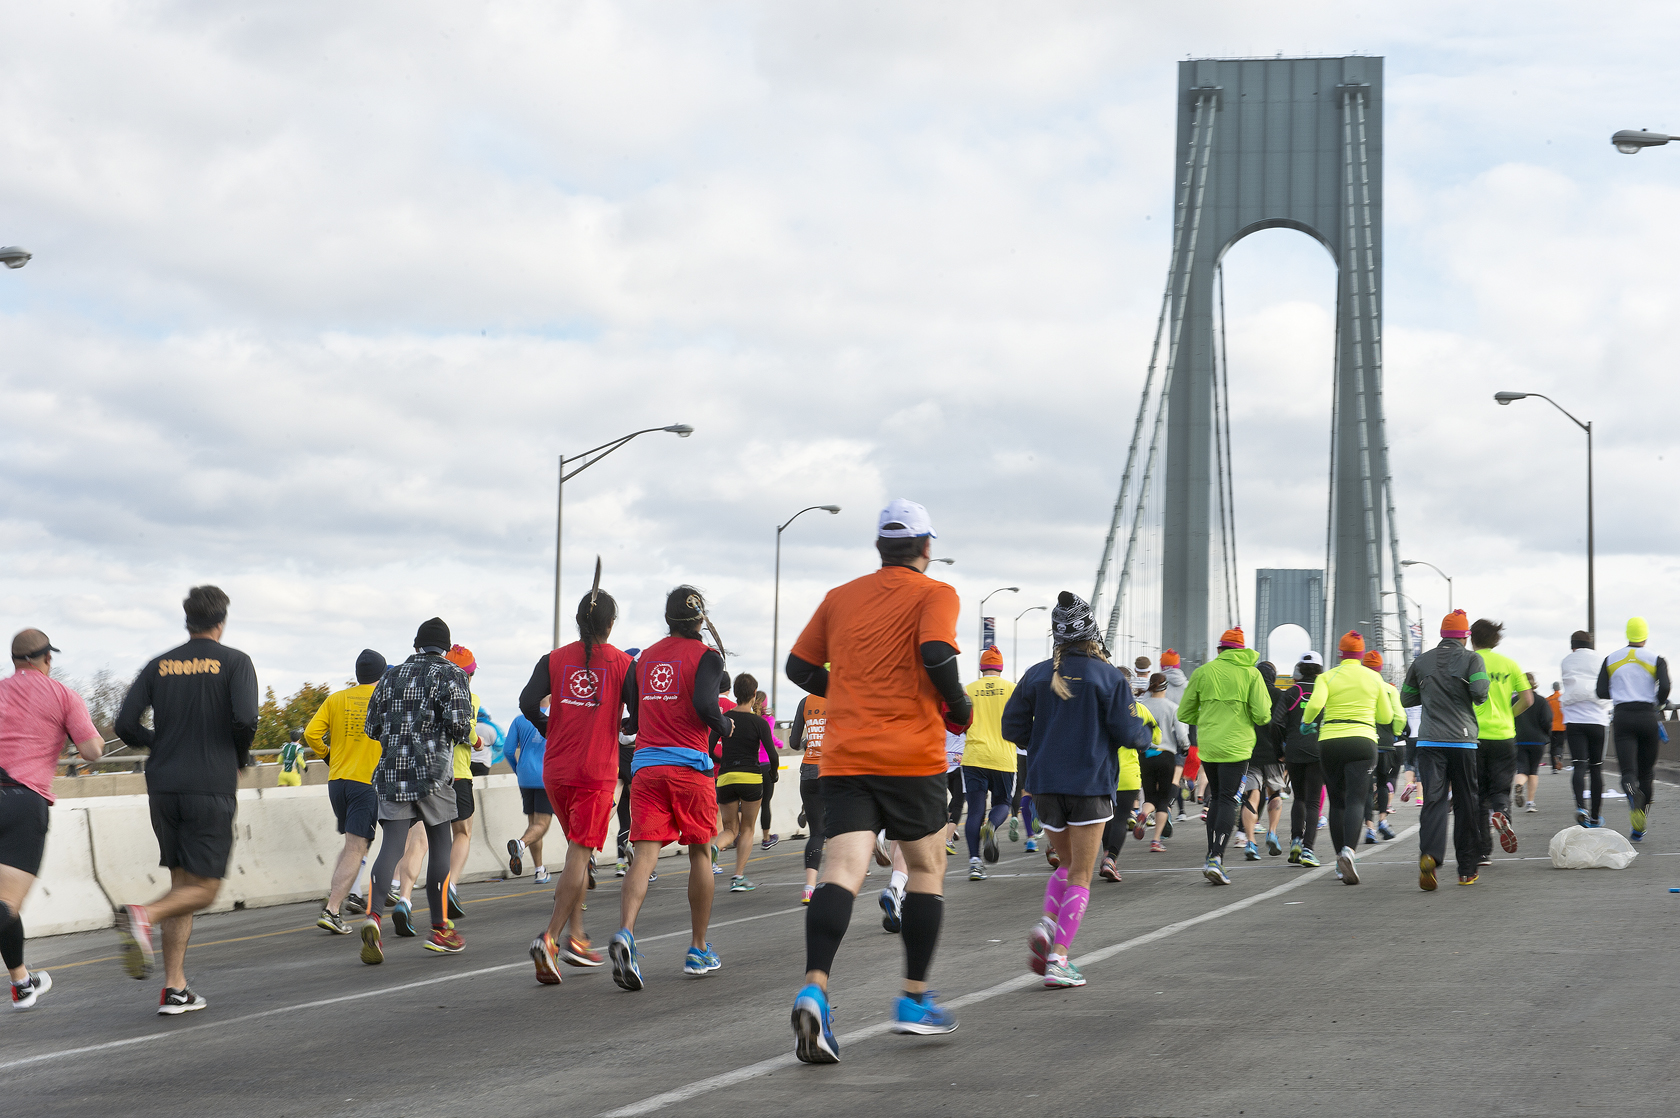 Le film Free to run accorde beaucoup d'importance au Marathon de New-York, épreuve mythique s'il en est.